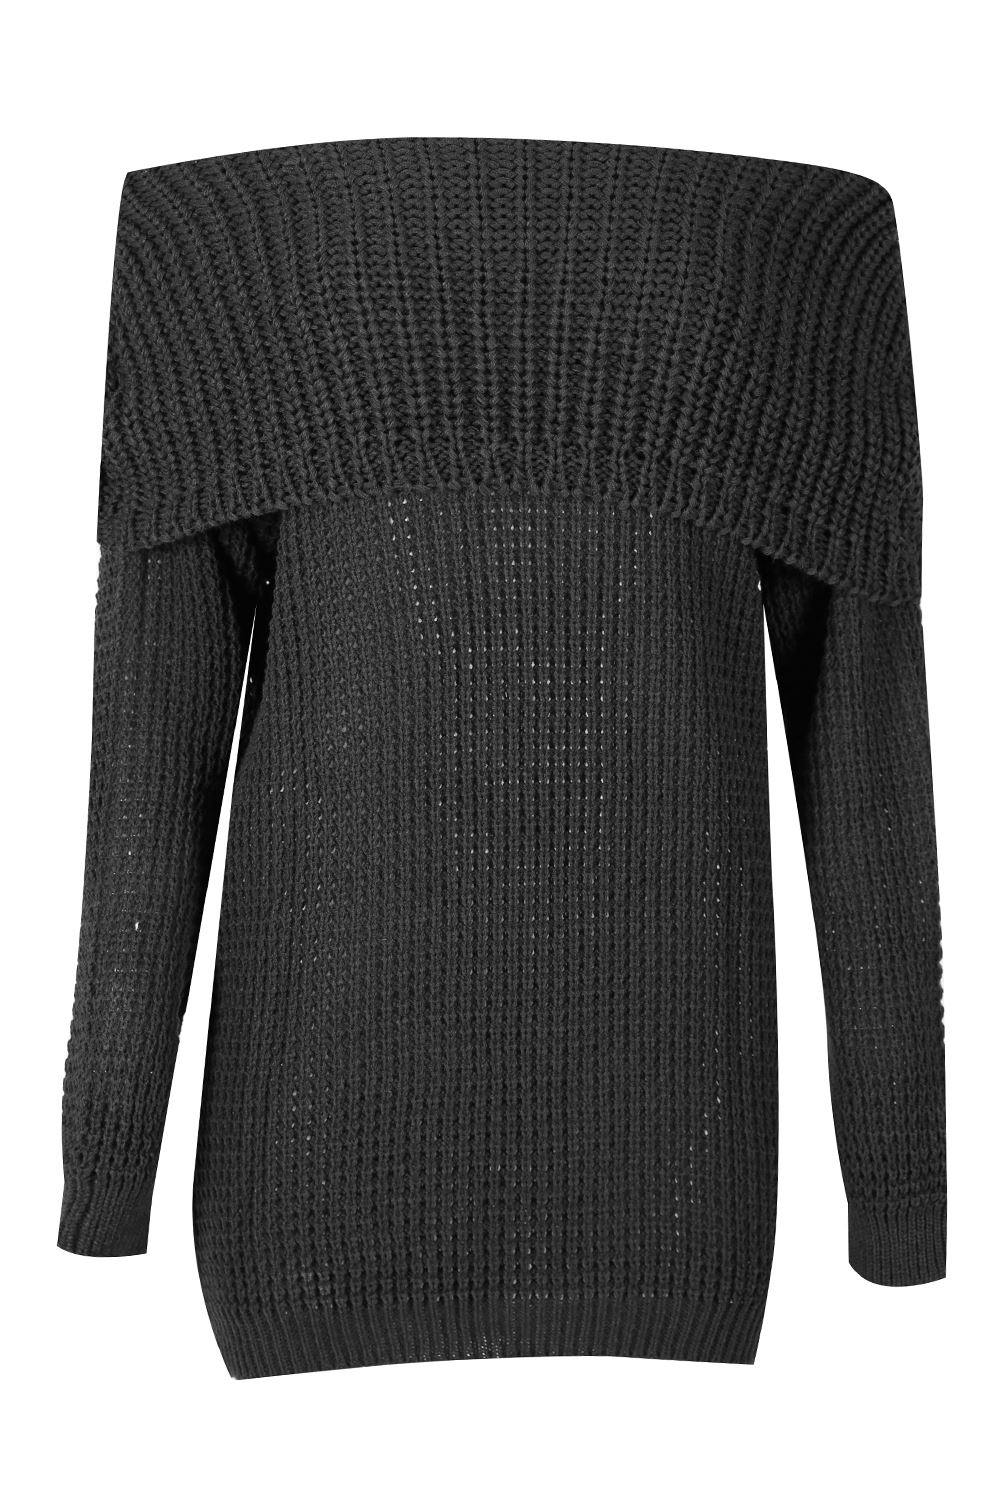 2b6a6f89a0 Womens Ladies Off Shoulder Cable Ribbed Knit Oversized Bardot ...